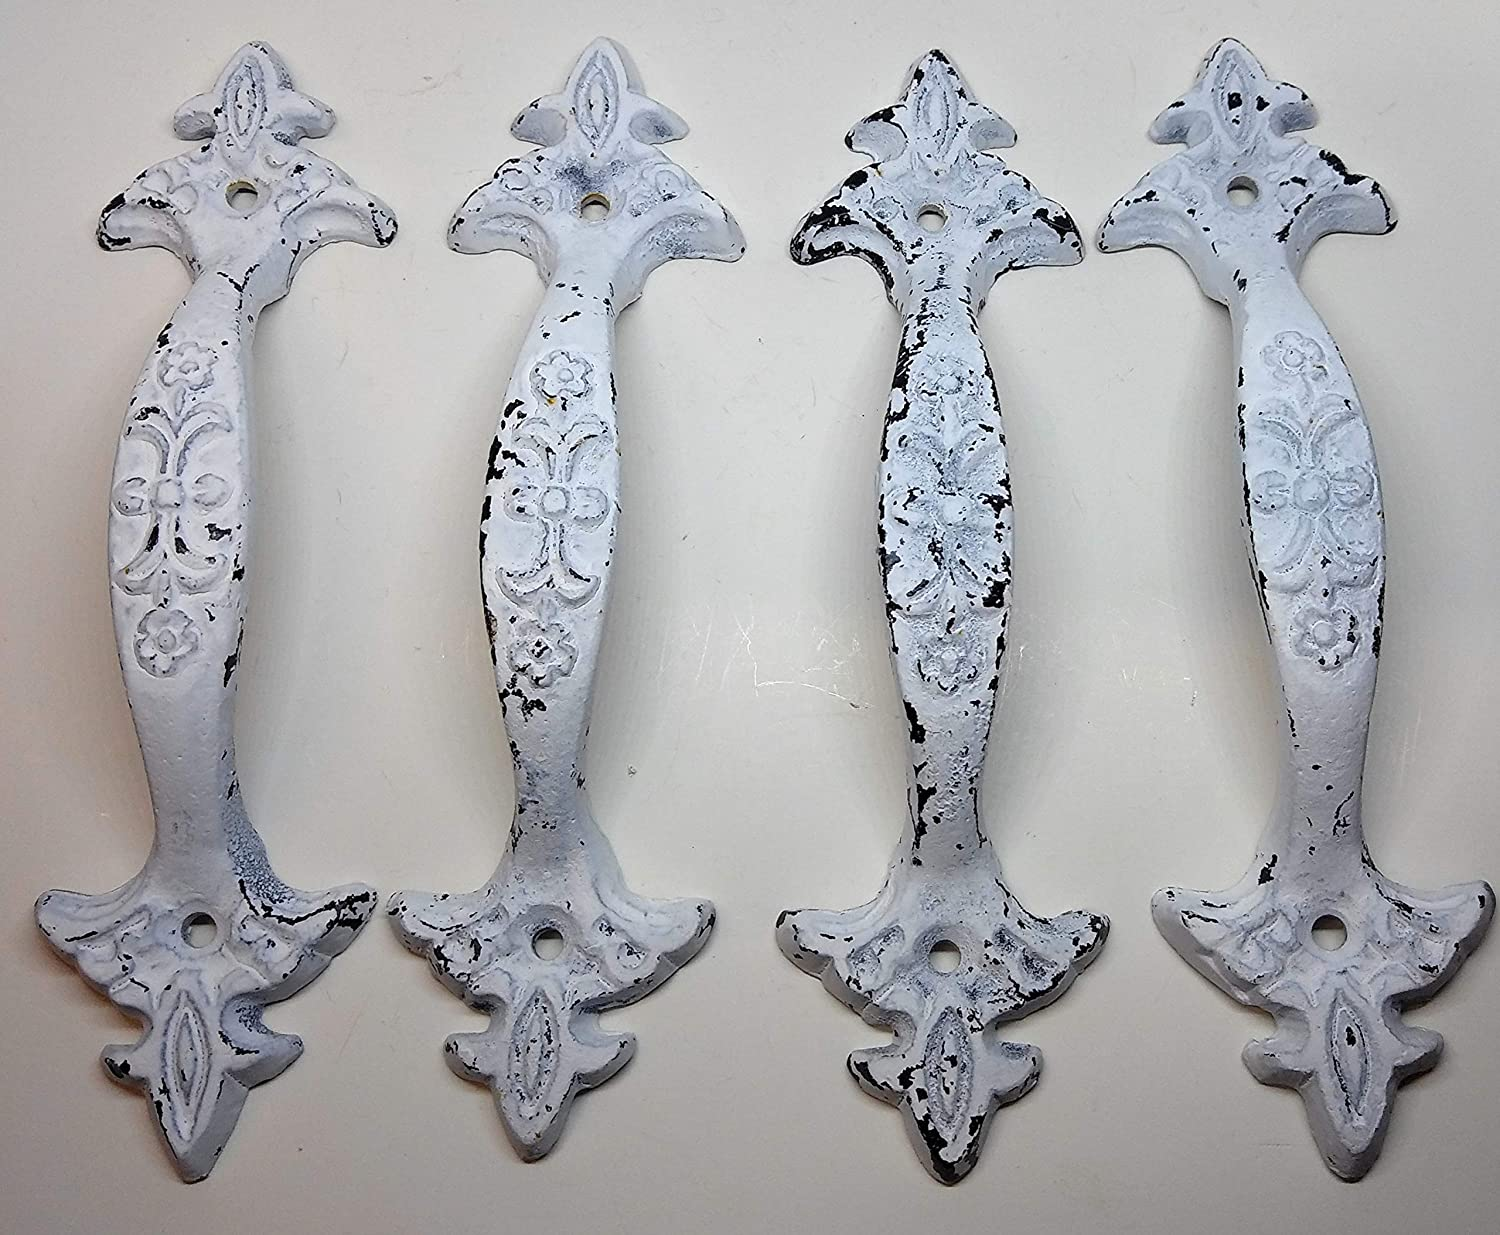 Set of 4 Cast Iron Large & Fancy Antique Replica Drawer Pull/Barn Gate Handle Shabby Chic Vintage Crafts and Decor (Very Shabby Warn White Finish) | 6.5 x 1.75 x 1.00-Inches CI214